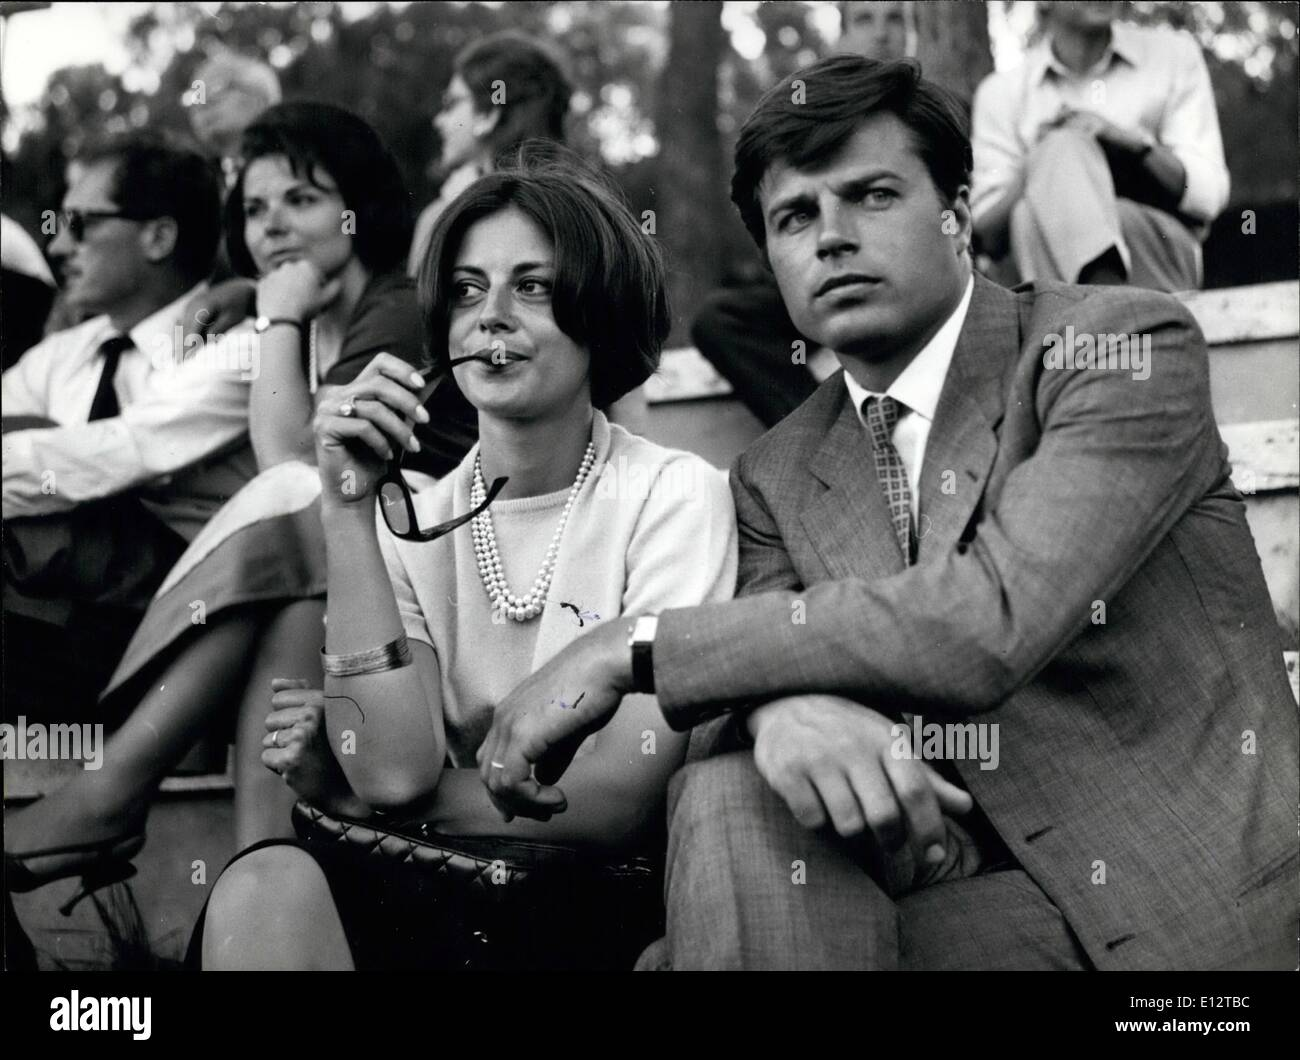 Feb. 24, 2012 - Rome, May 9th 1964. Anna Maria Ferrero, the Italian actress who married one year ago French actor Jean Sorel seen today with her husband at the Tennis Championship at Foro Italico. The couple who live during the winter time in Paris are in Rome for a holiday and also for film conference. - Stock Image